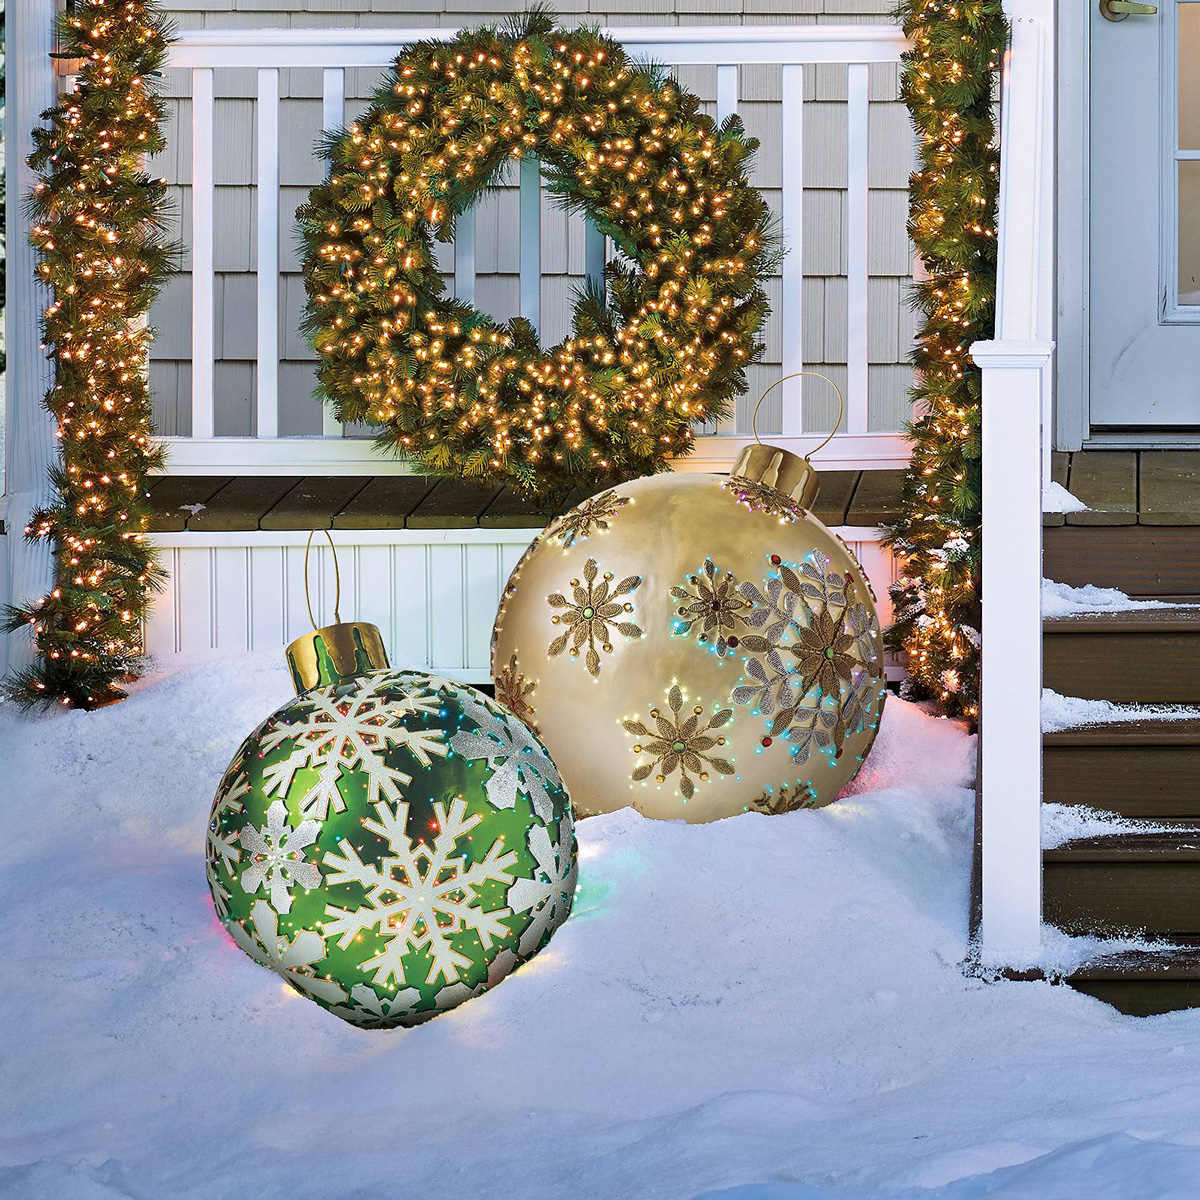 Outdoor Christmas Decorations: Massive Fiber-Optic LED Outdoor Christmas Ornaments